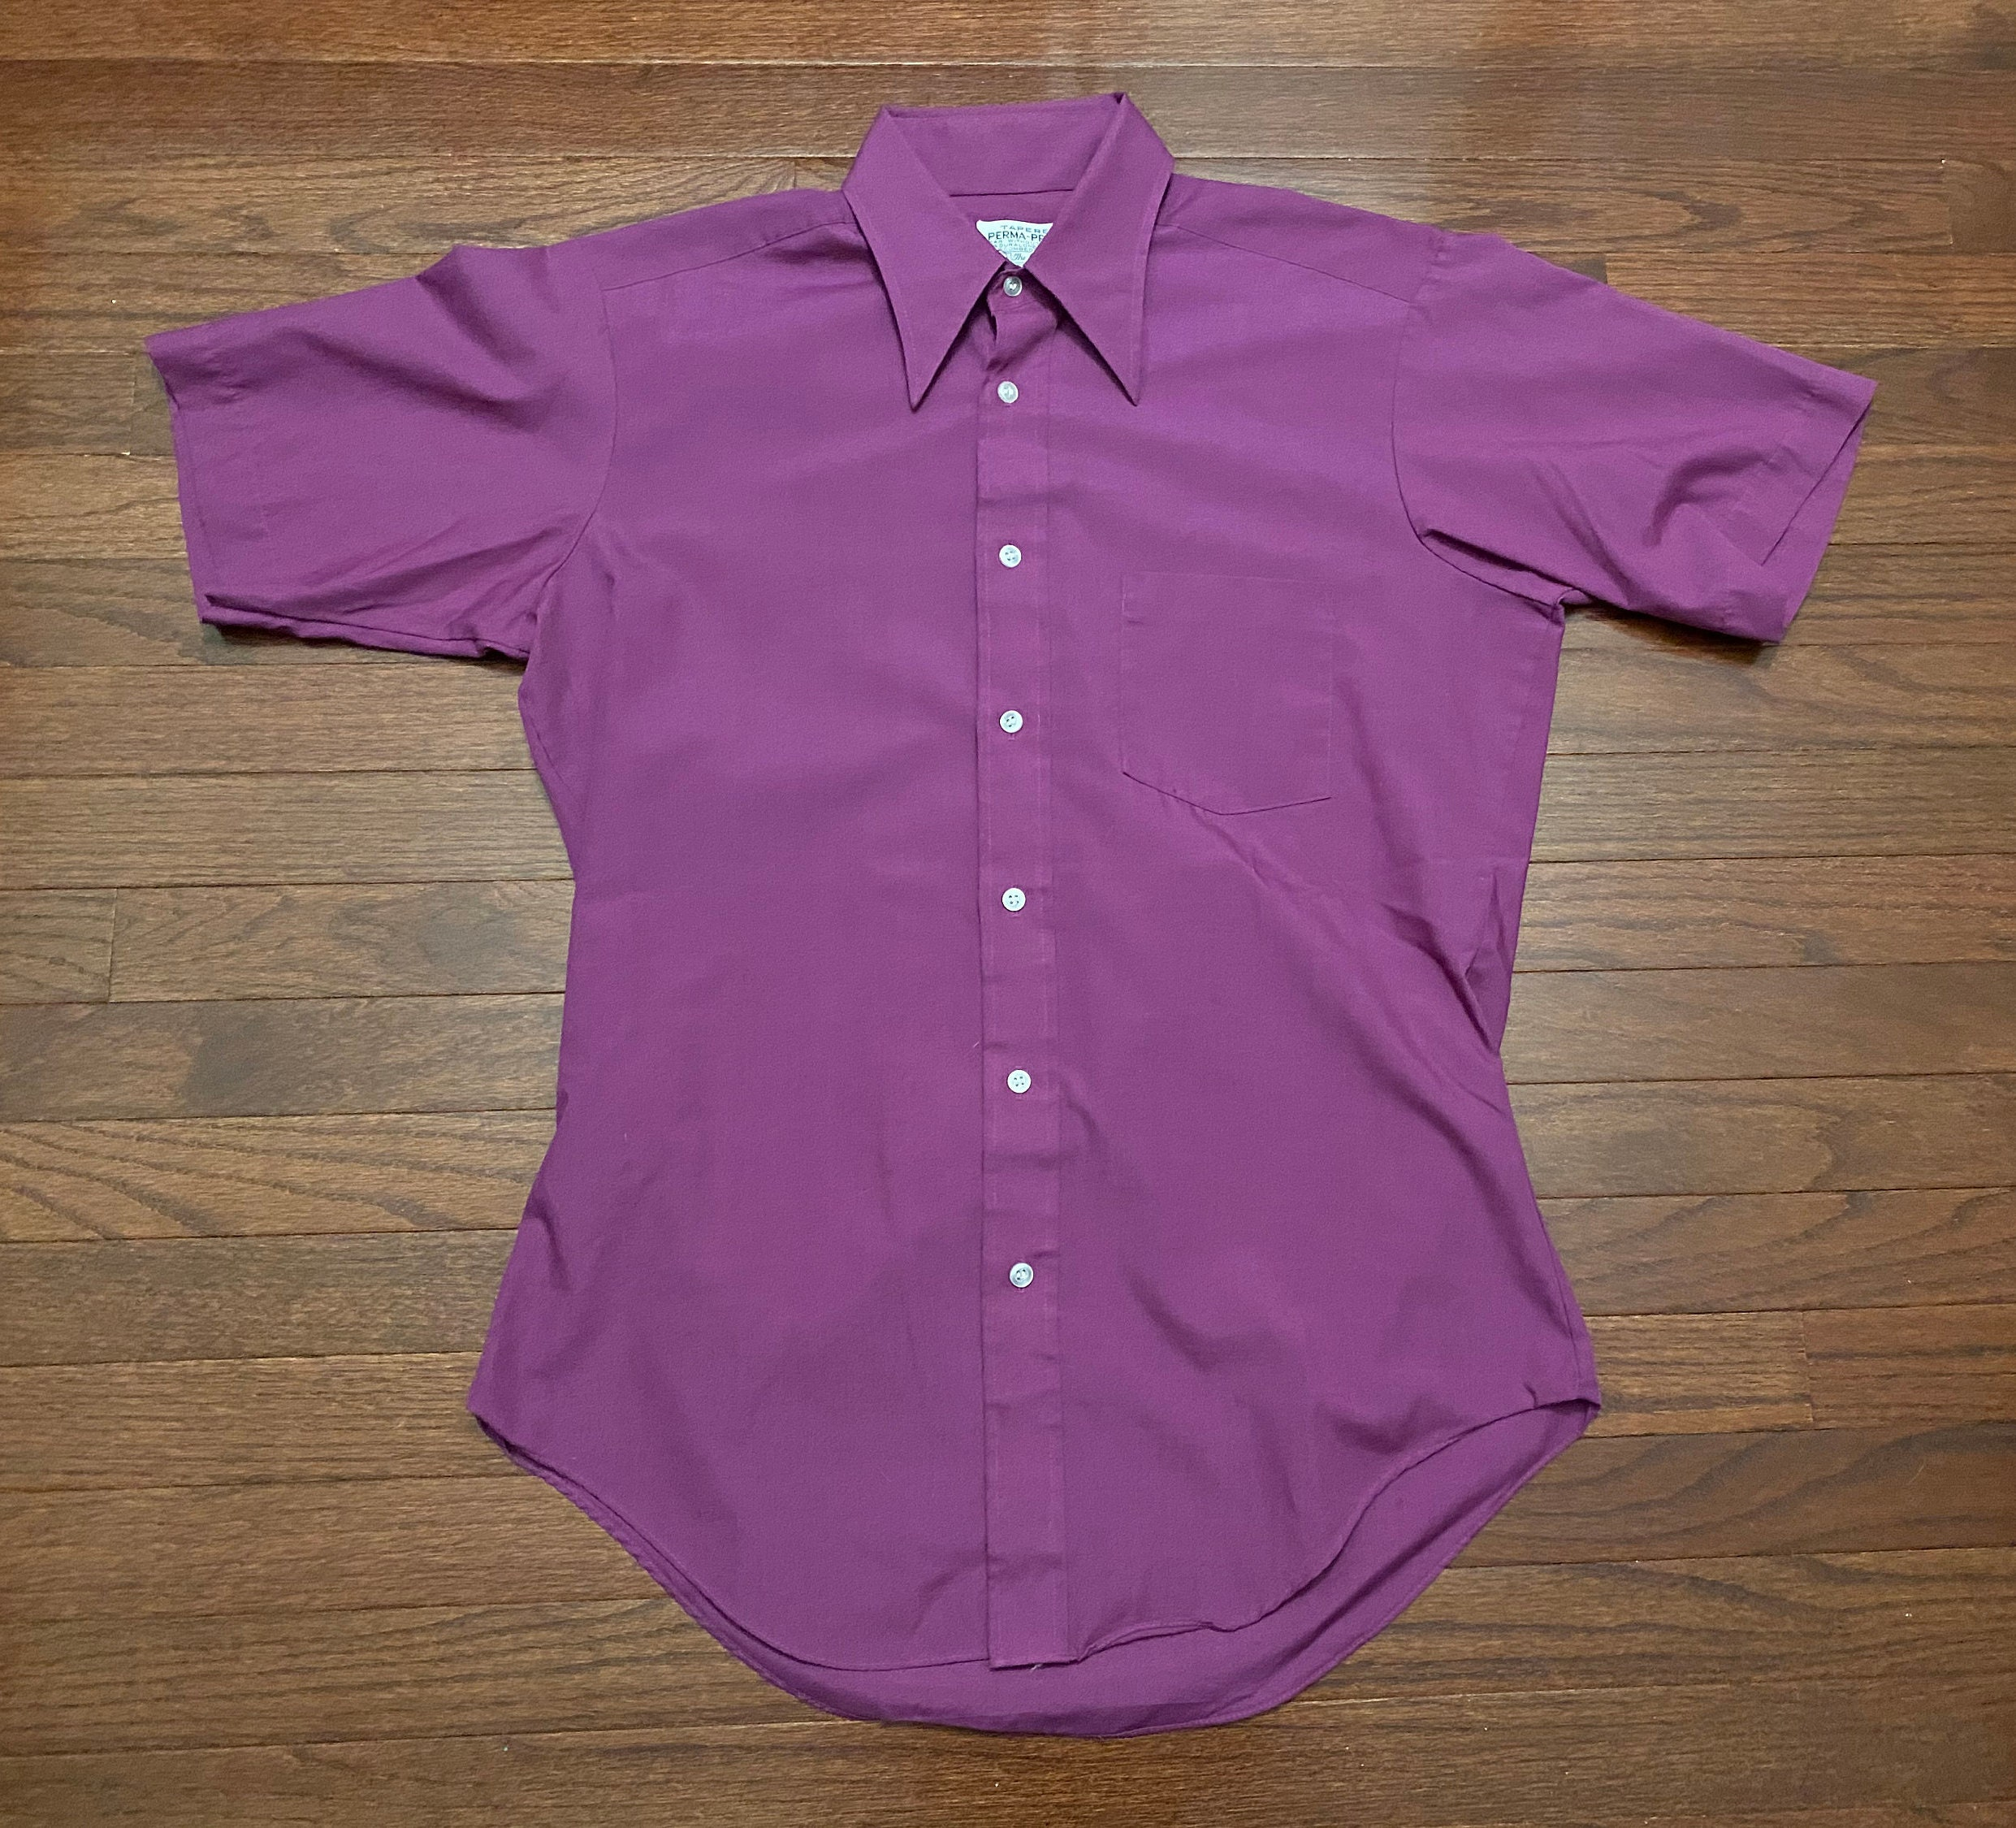 1970s Mens Shirt Styles – Vintage 70s Shirts for Guys xl Vintage Sears The Mens Store Button Up SS Shirt Tapered Perma Prest Purple 1970s 70s 80s 1980s $0.00 AT vintagedancer.com